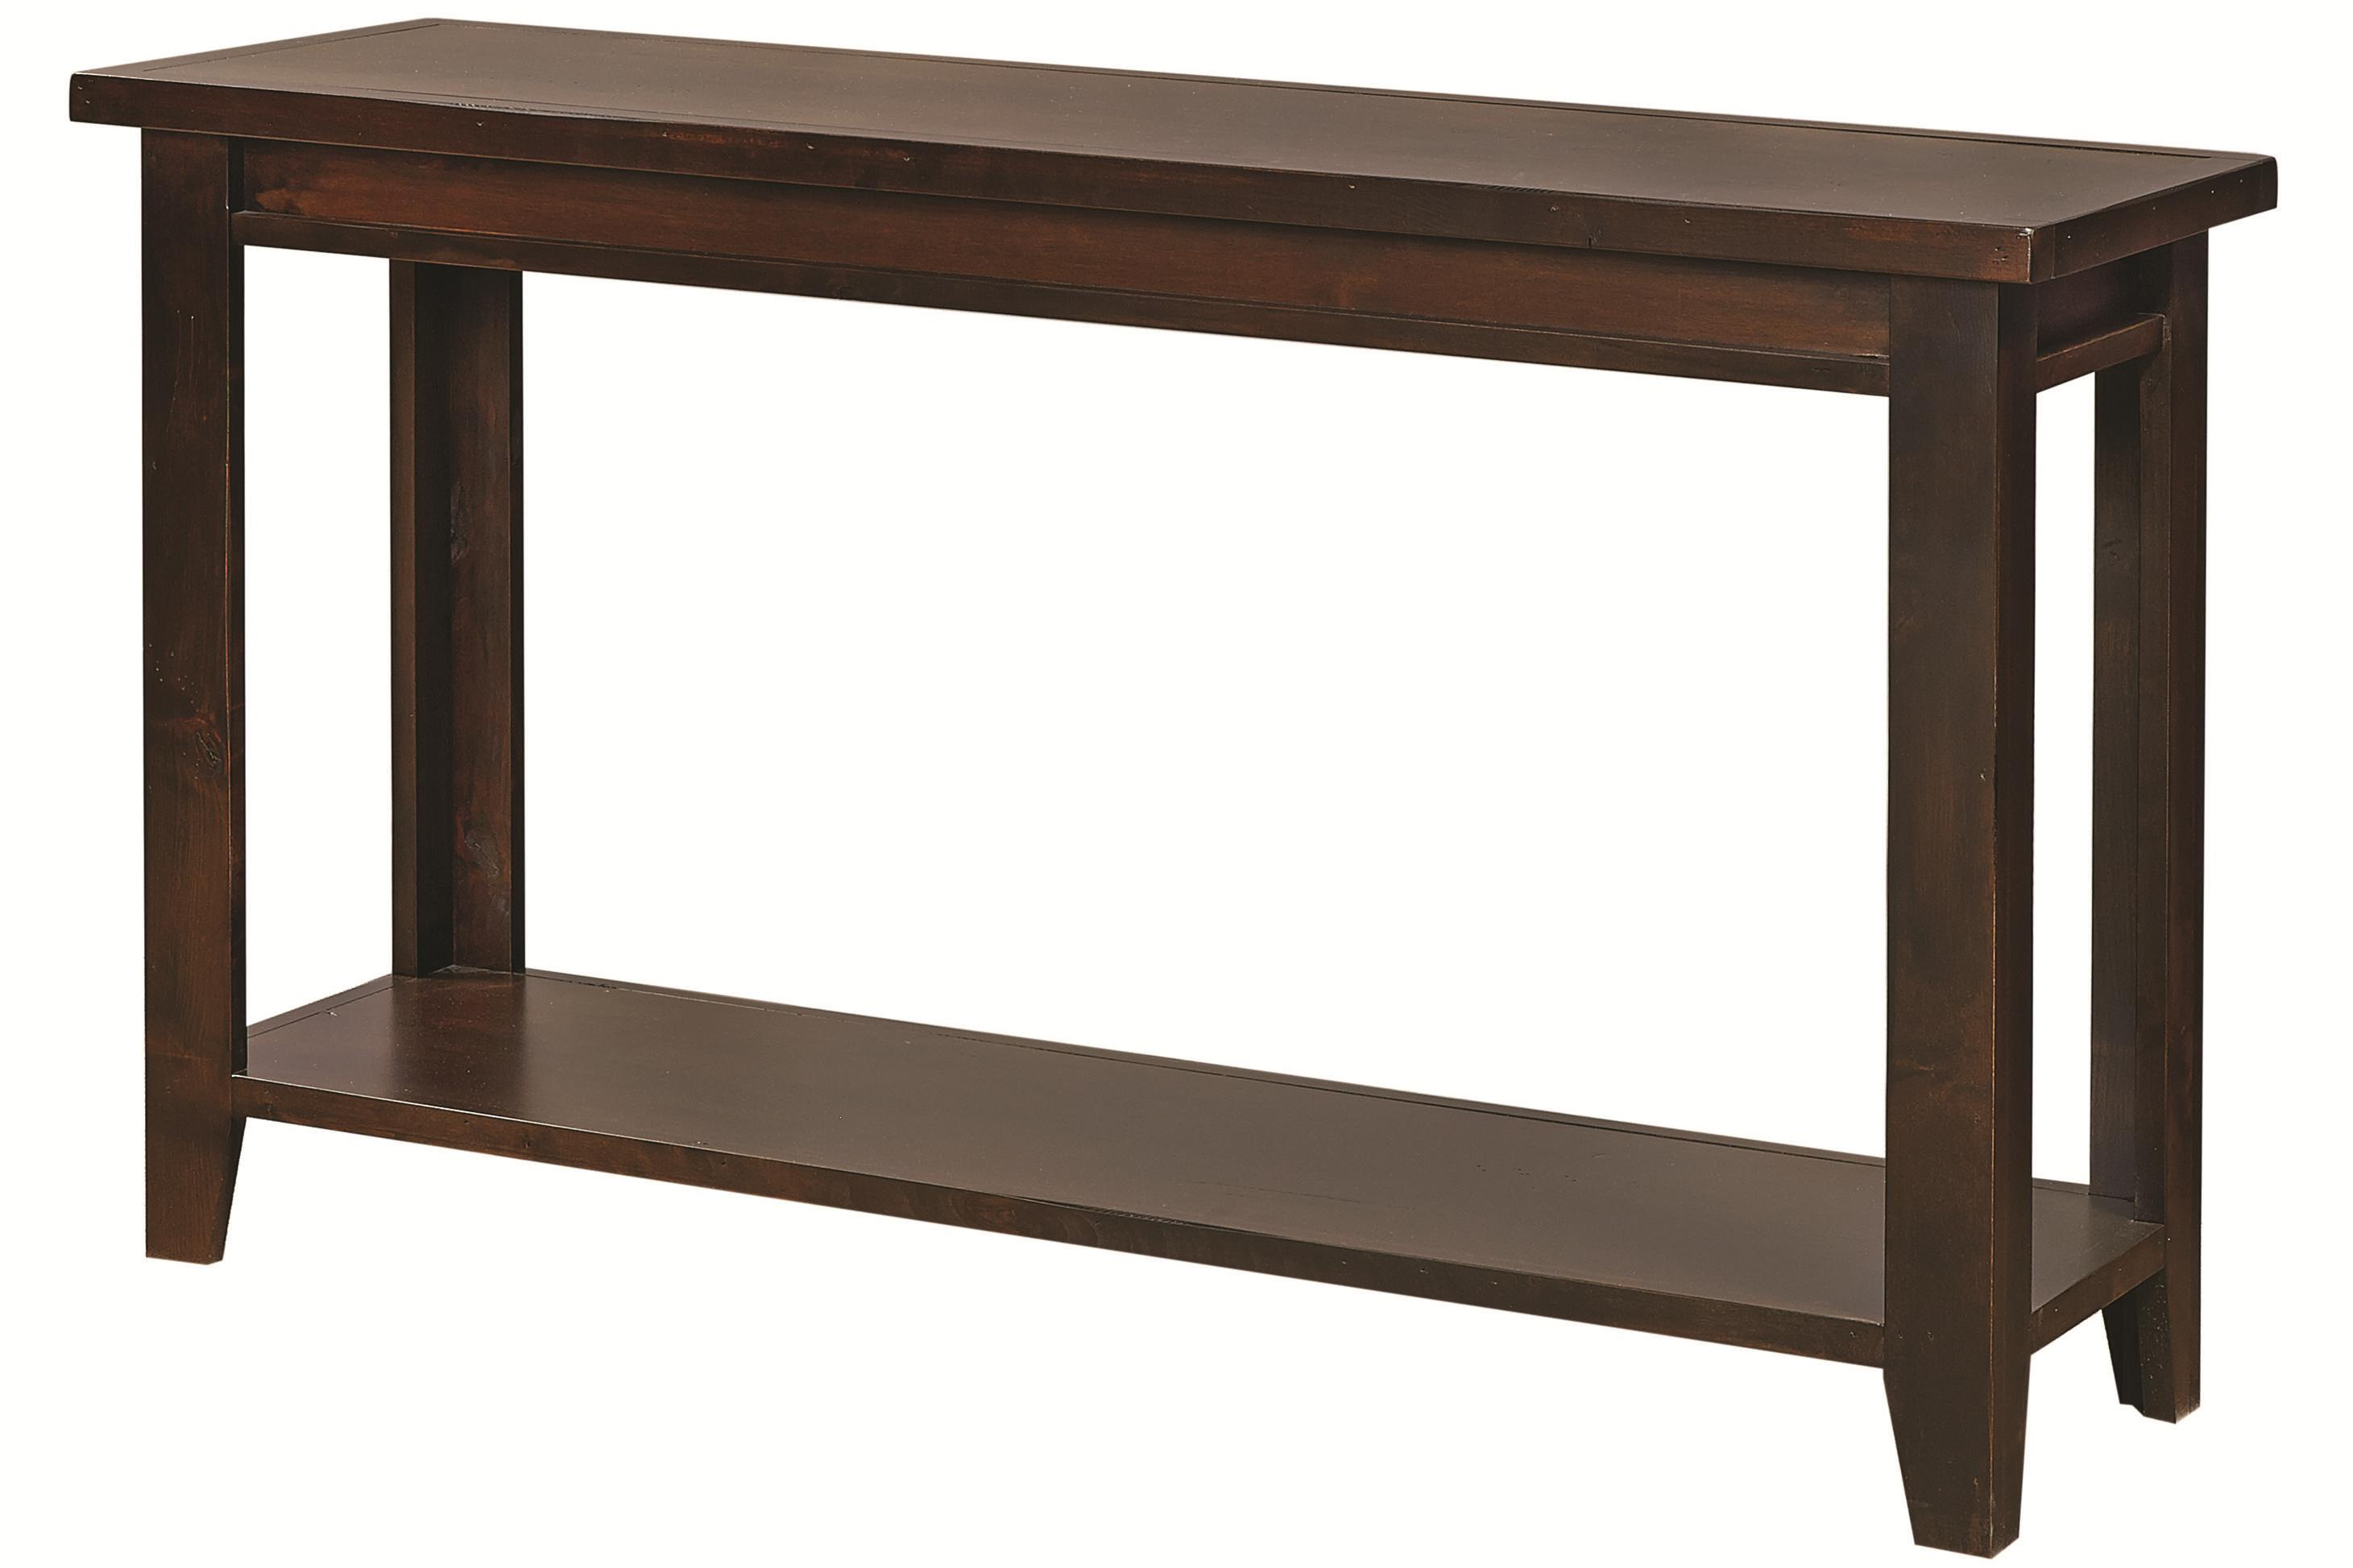 Alder Grove Sofa Table by Birch Home at Sprintz Furniture